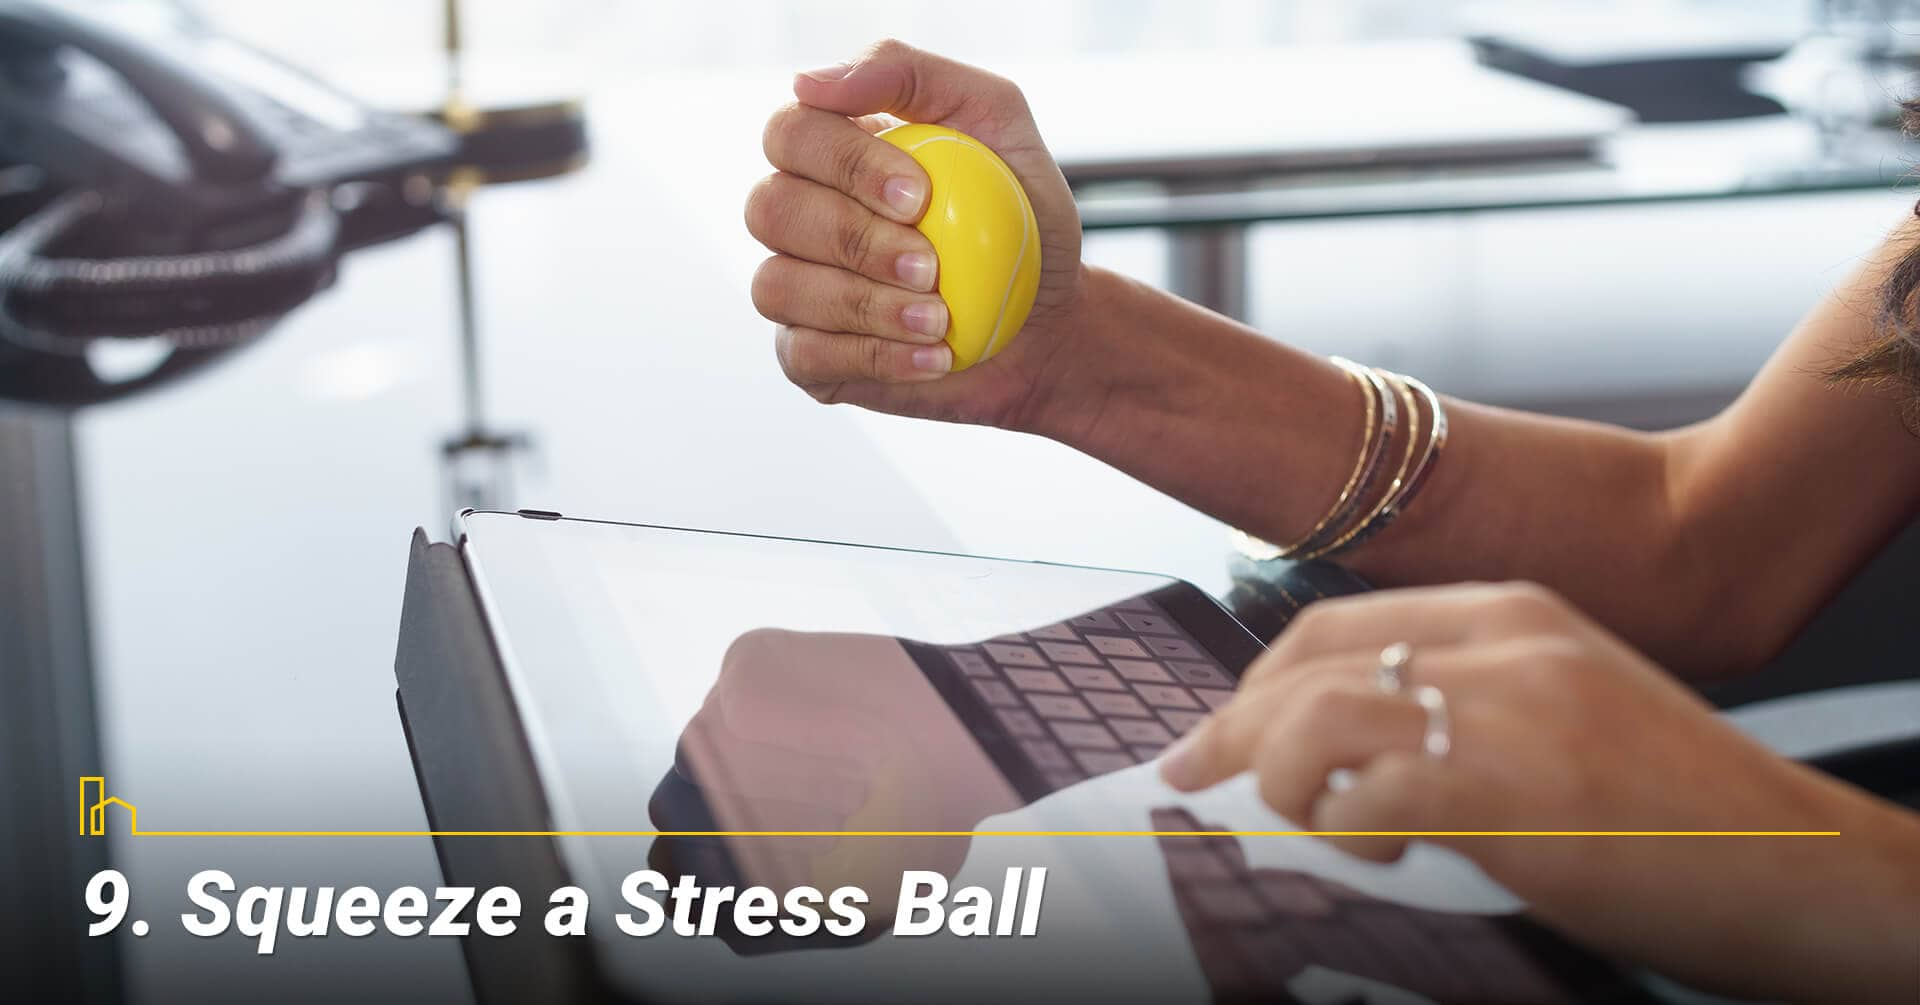 Squeeze a Stress Ball, keep stress level low